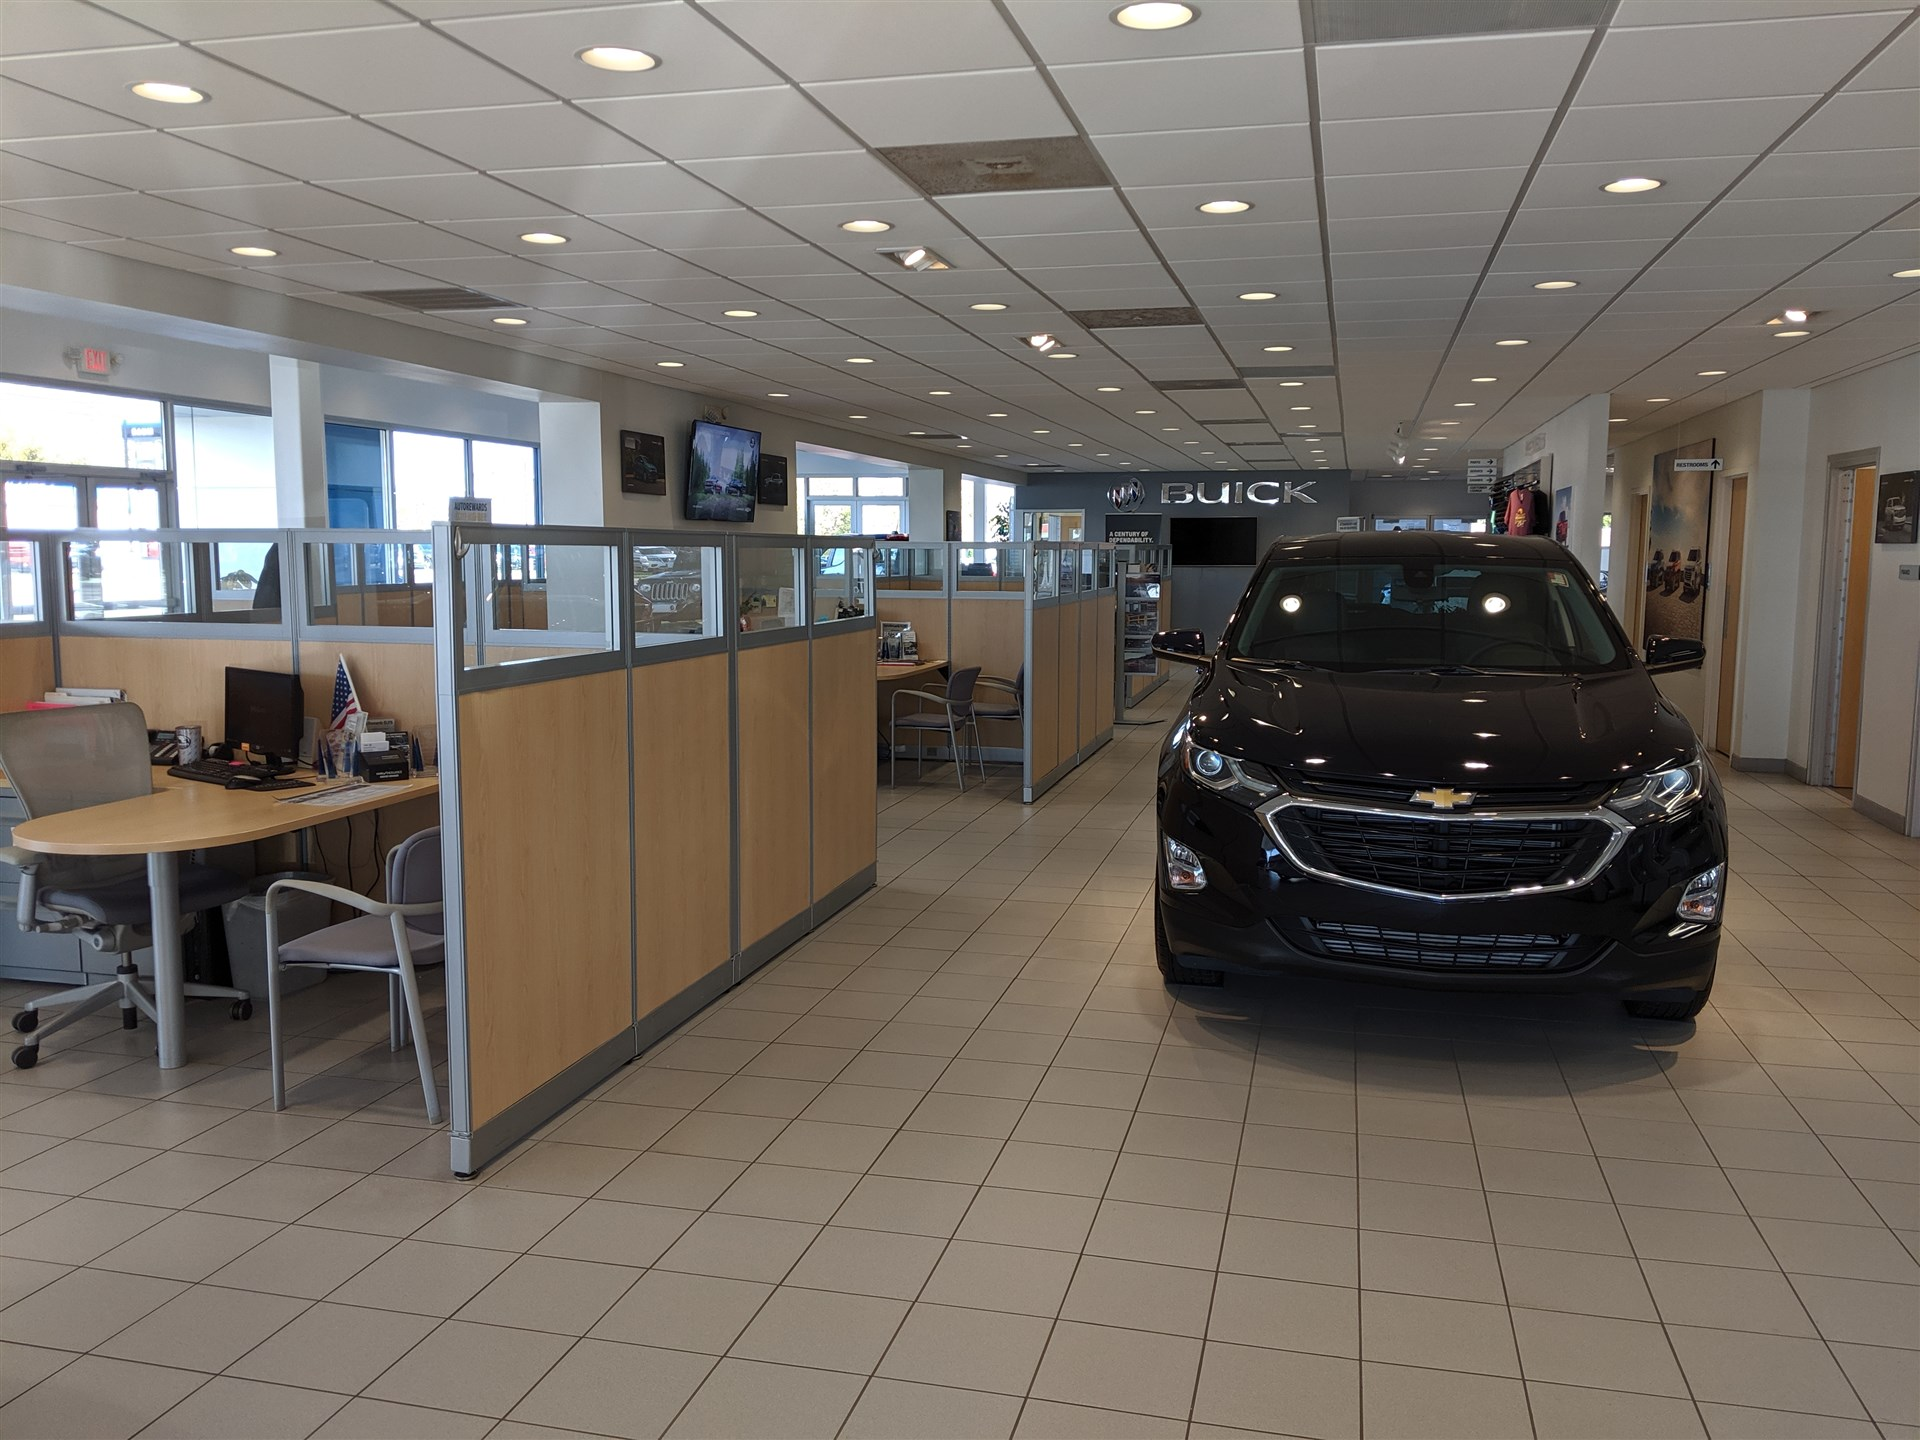 Baum Chevrolet Buick Company Shop Chevrolet Cars With Best Deals In Clinton